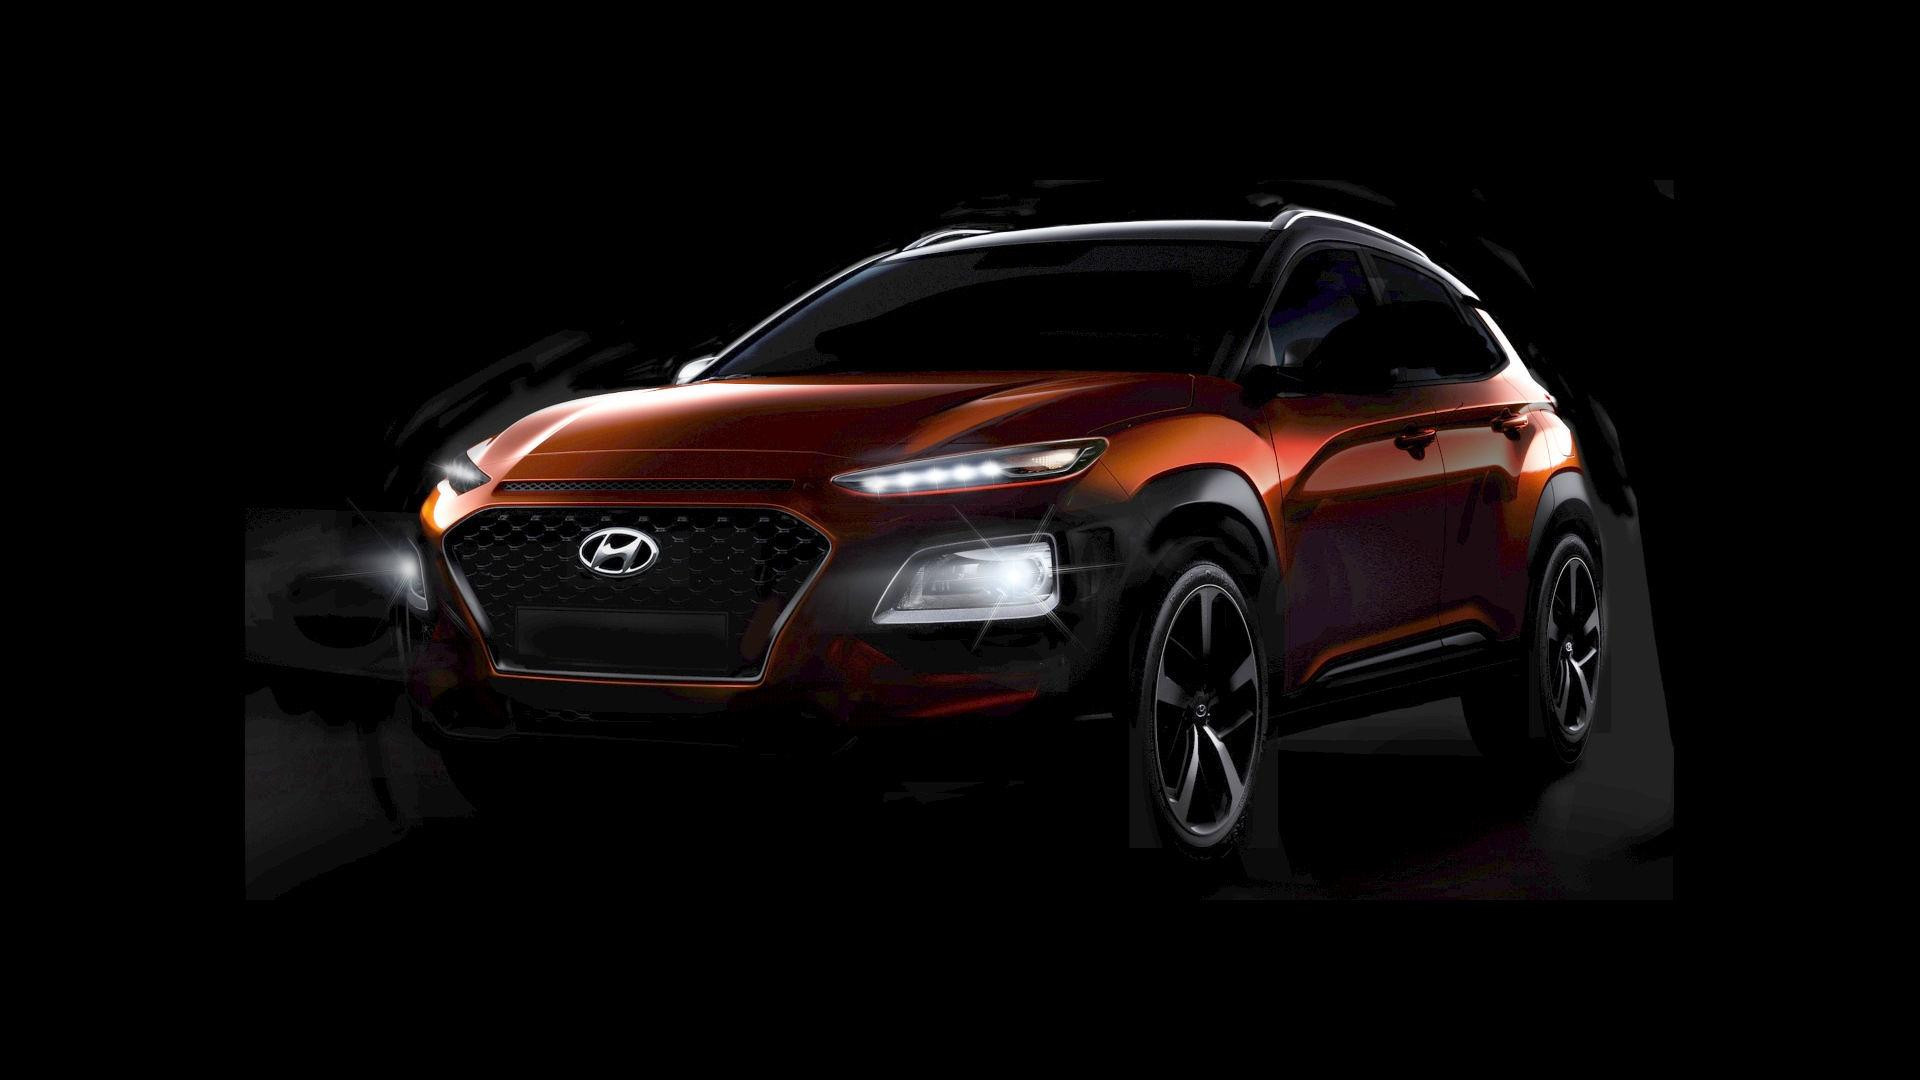 Phantom Car Wallpaper 2018 Hyundai Kona Fully Shows Its Wacky Design